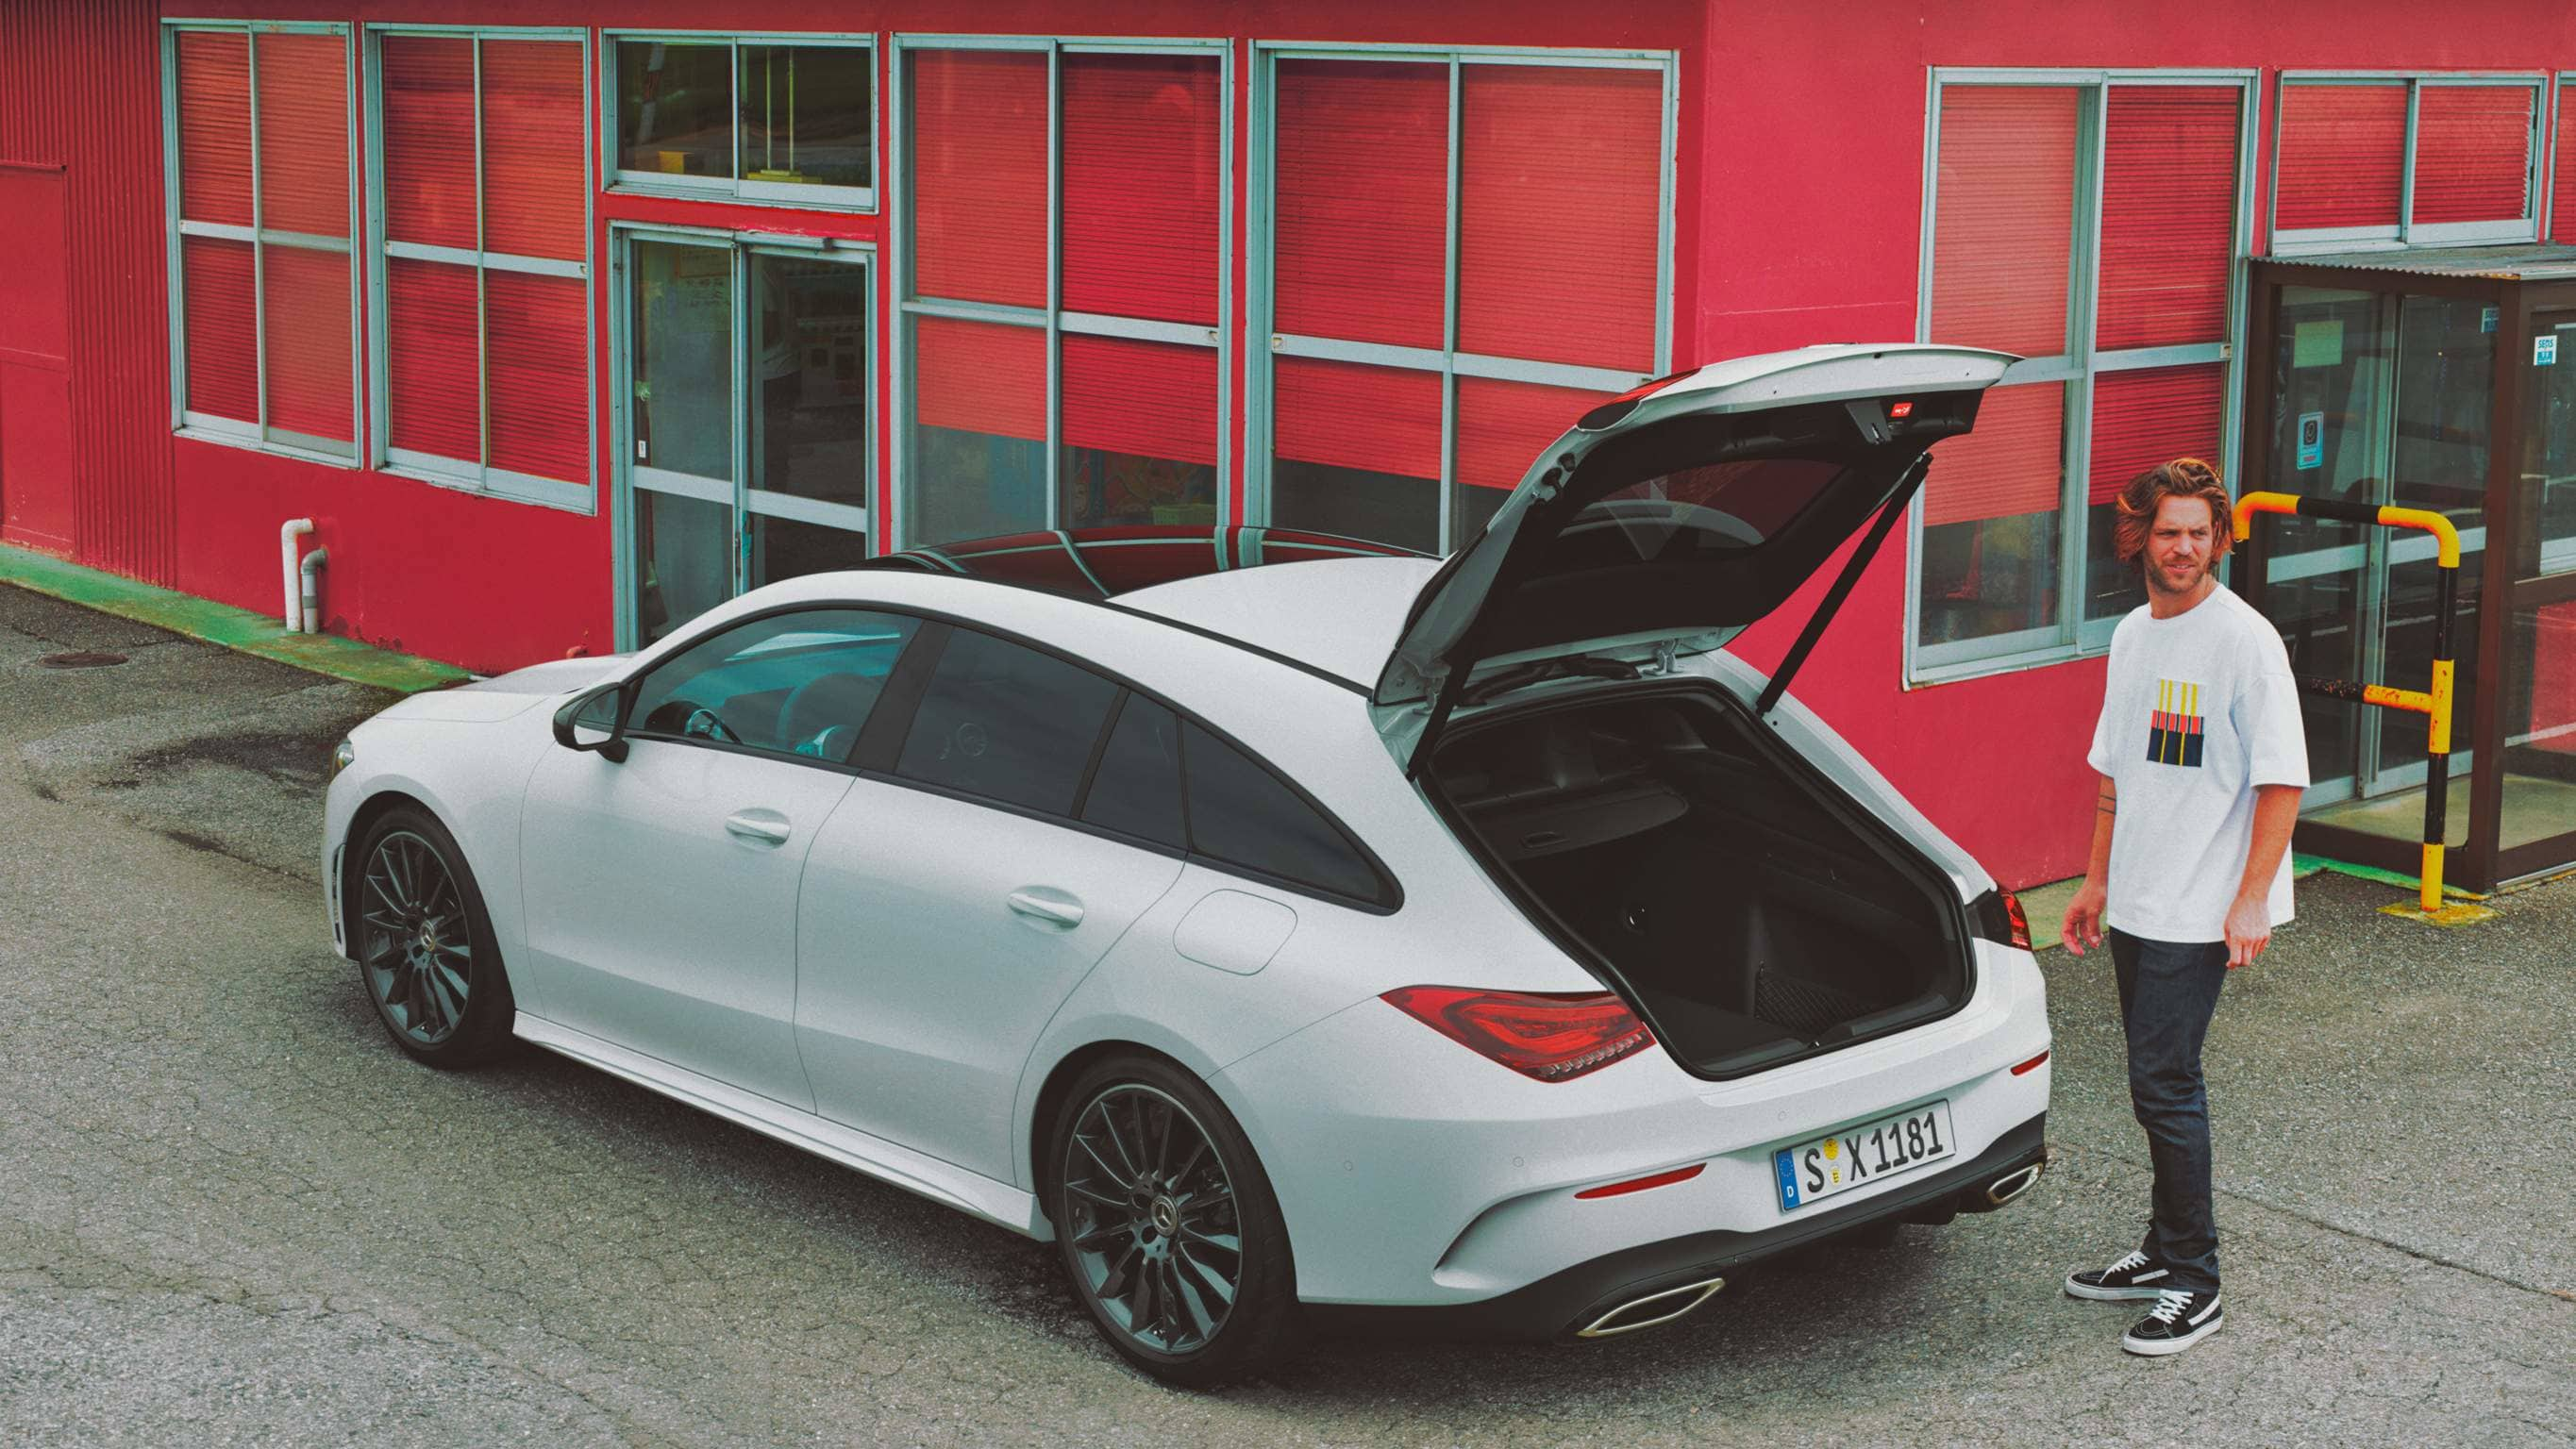 Новий автомобіль Mercedes-Benz CLA Shooting Brake екстер'єр